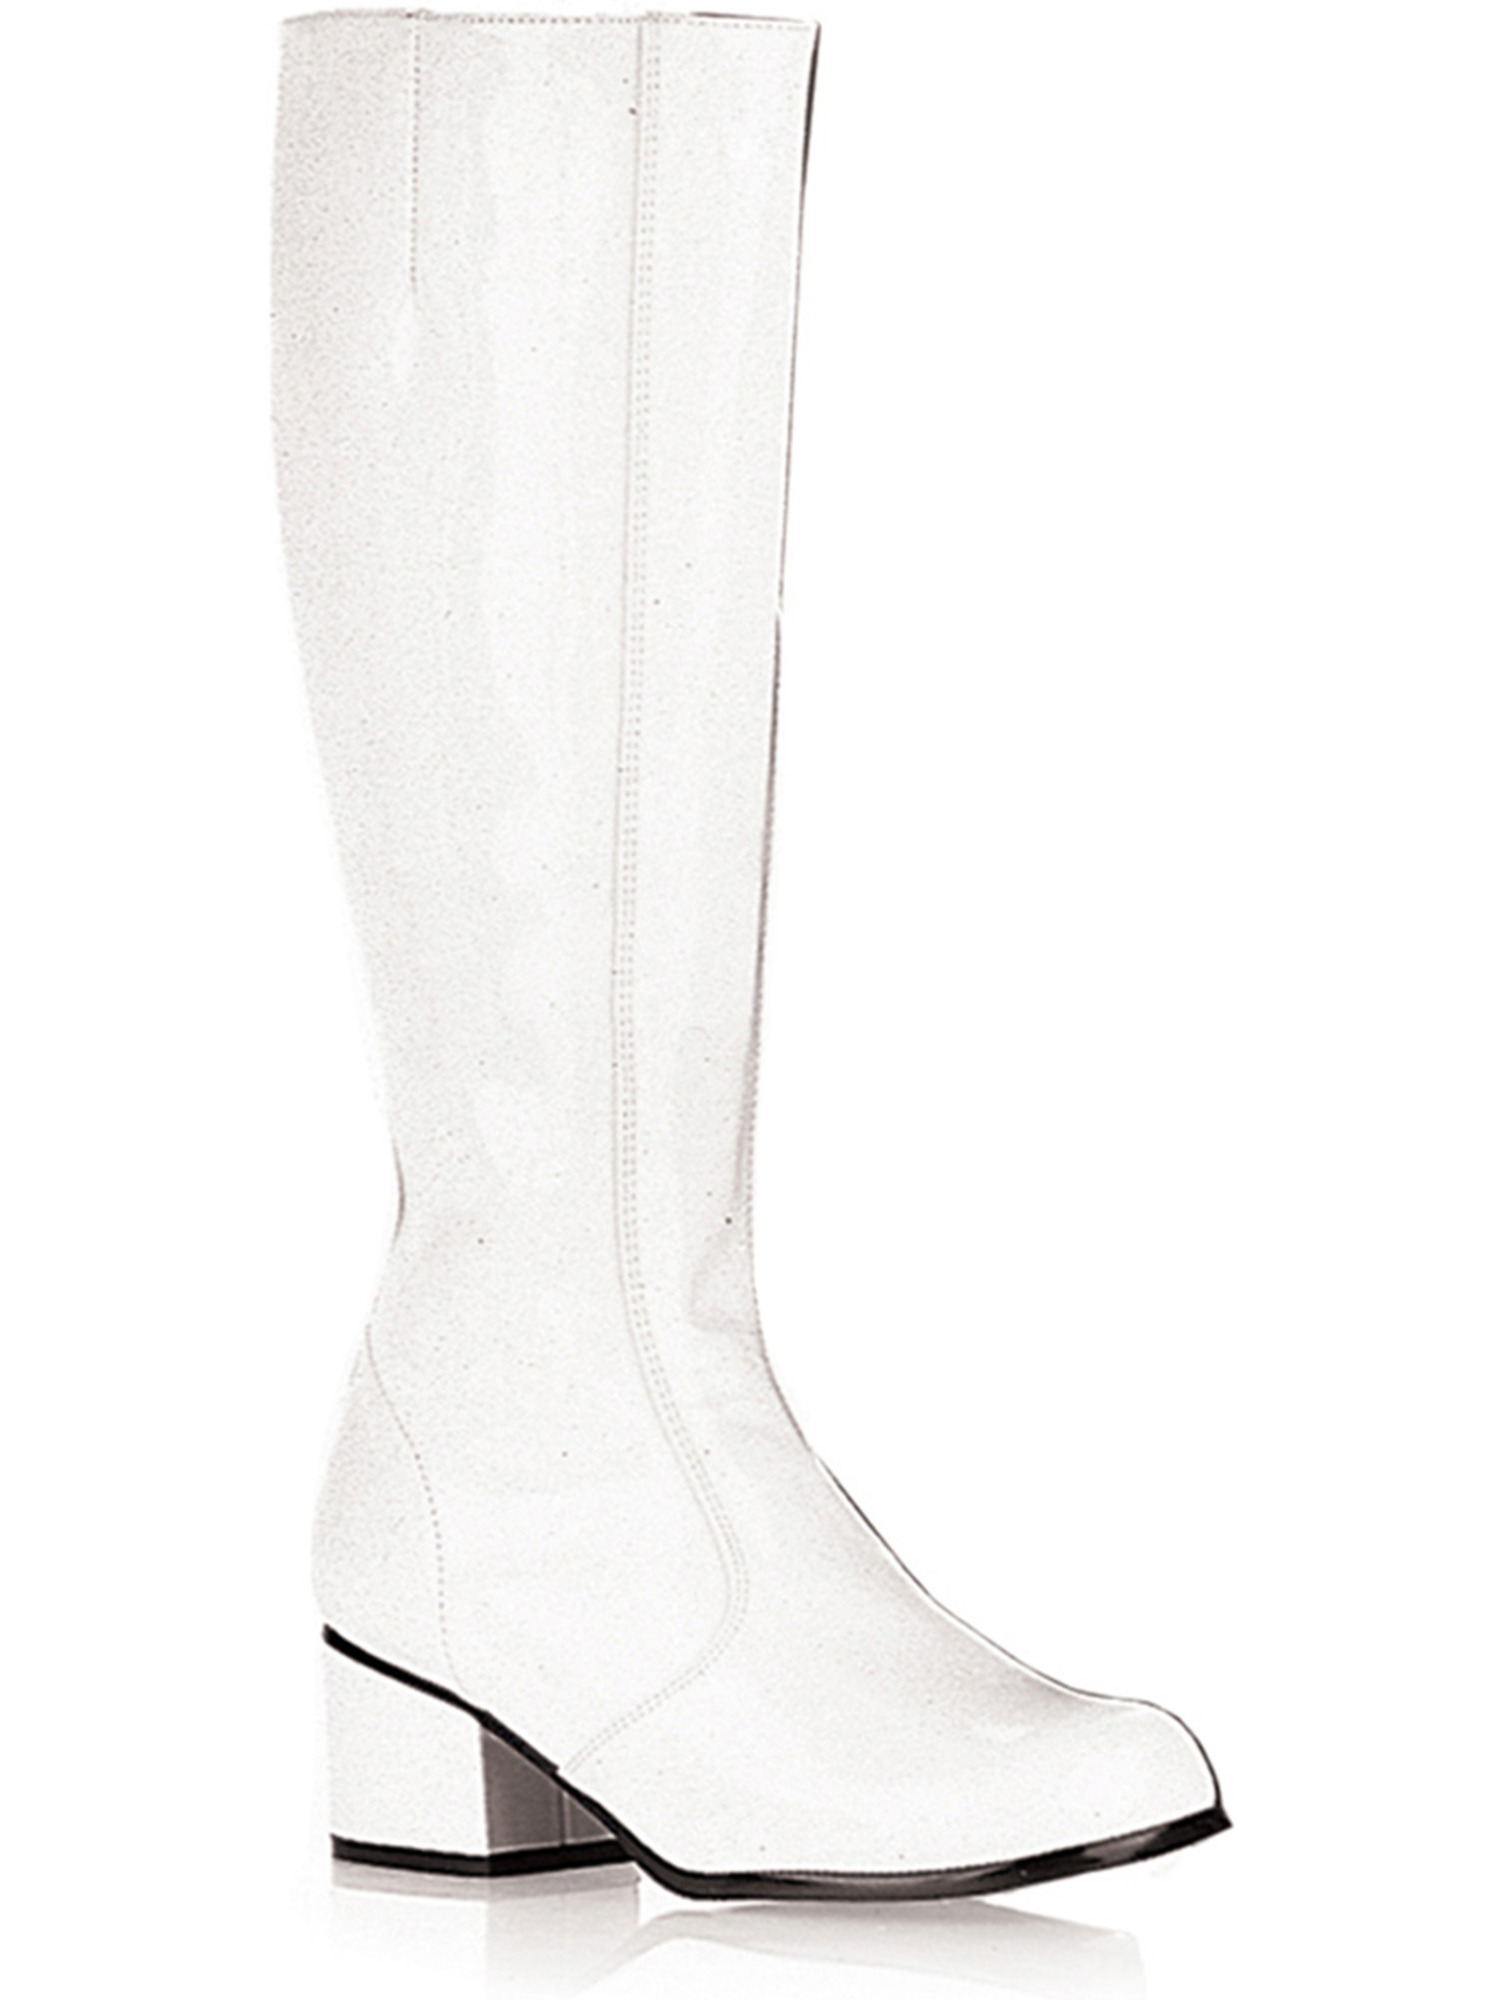 Sexy GOGO Boot Chunky Heel Theatre Costumes Dress Up White